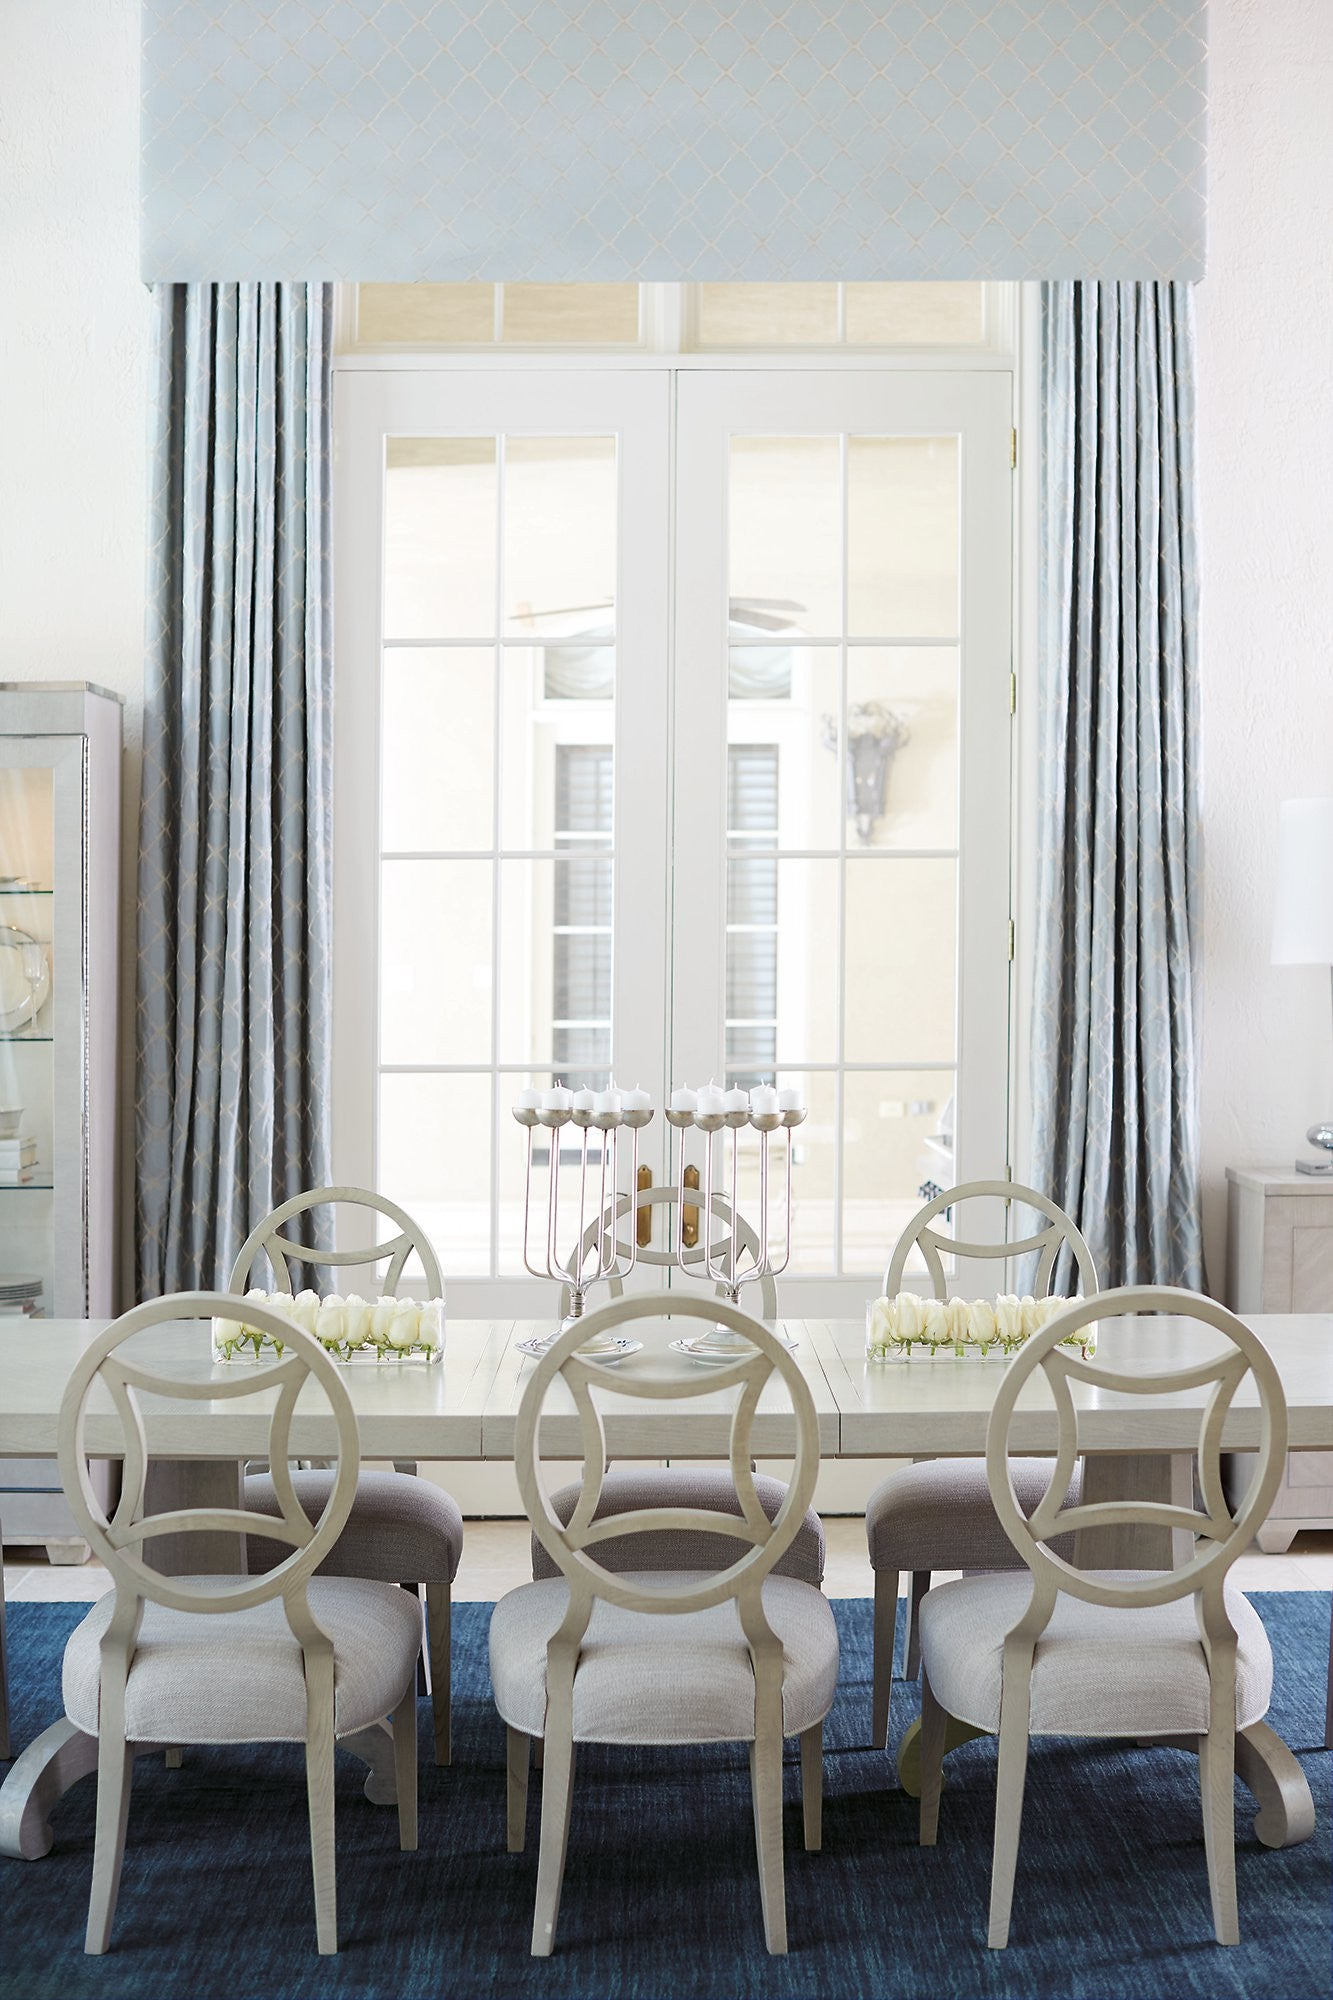 product arm company by interiors contemporary chair bernhardt furniture